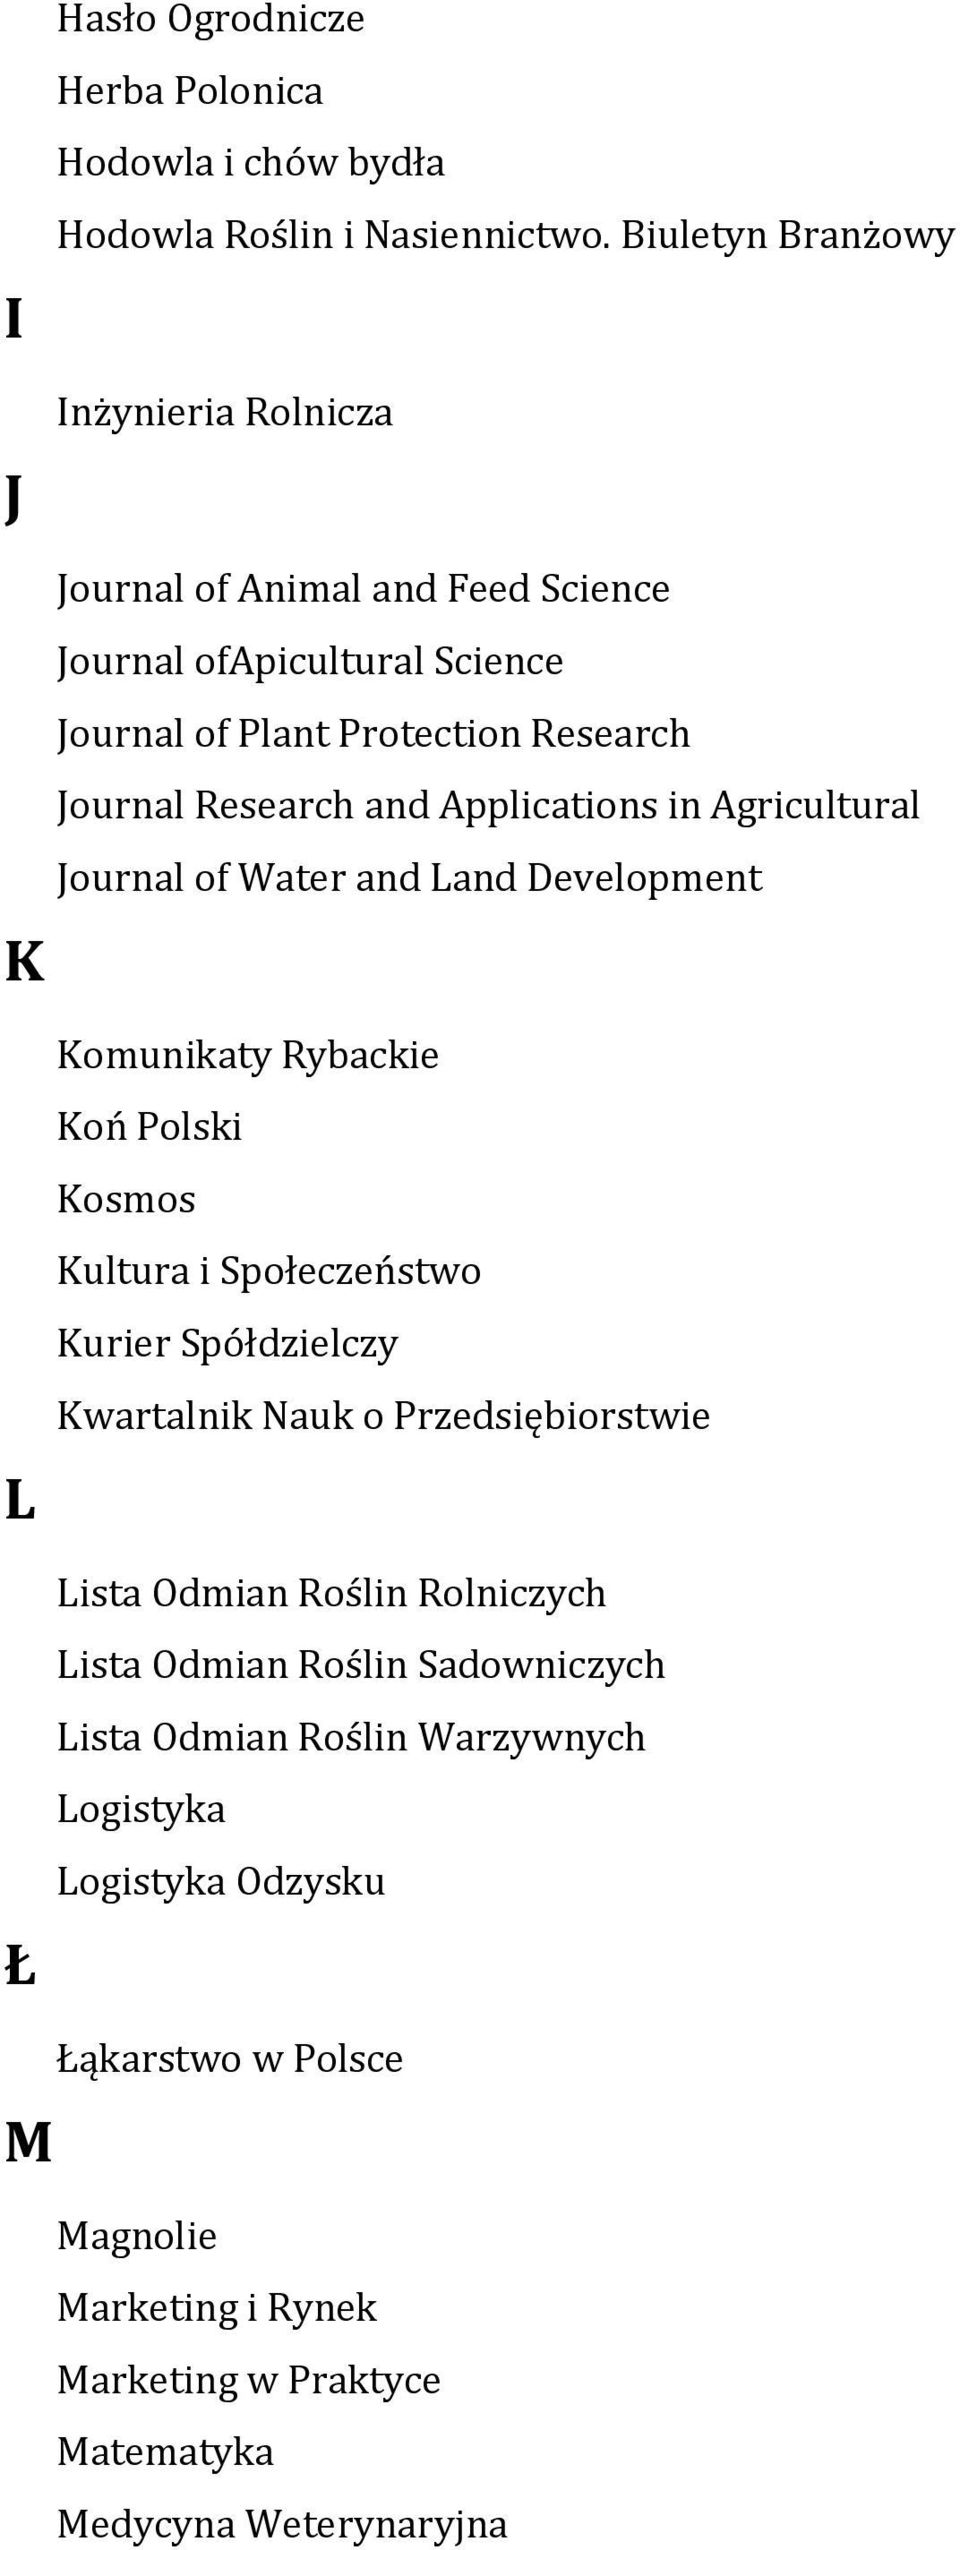 Applications in Agricultural Journal of Water and Land Development L Ł Komunikaty Rybackie Koń Polski Kosmos Kultura i Społeczeństwo Kurier Spółdzielczy Kwartalnik